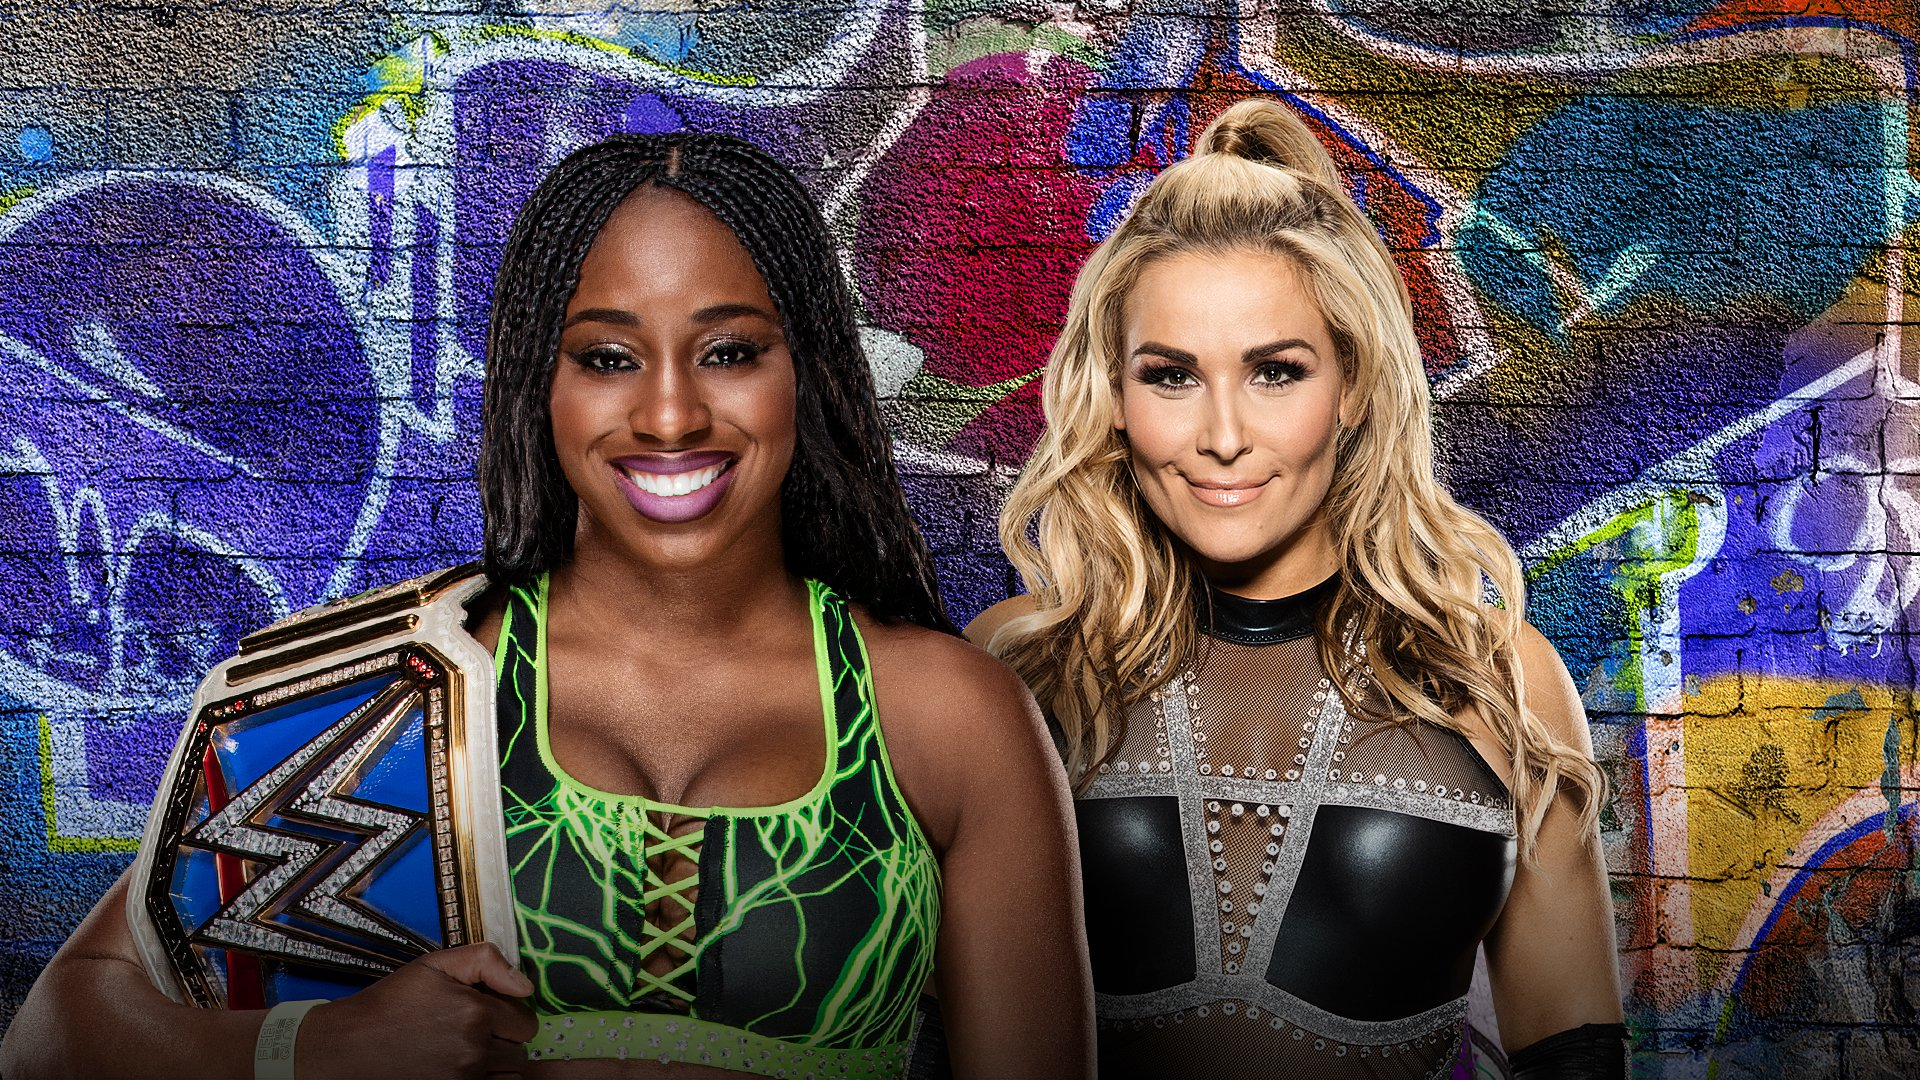 WWE SummerSlam 2017: Naomi vs. Natalya